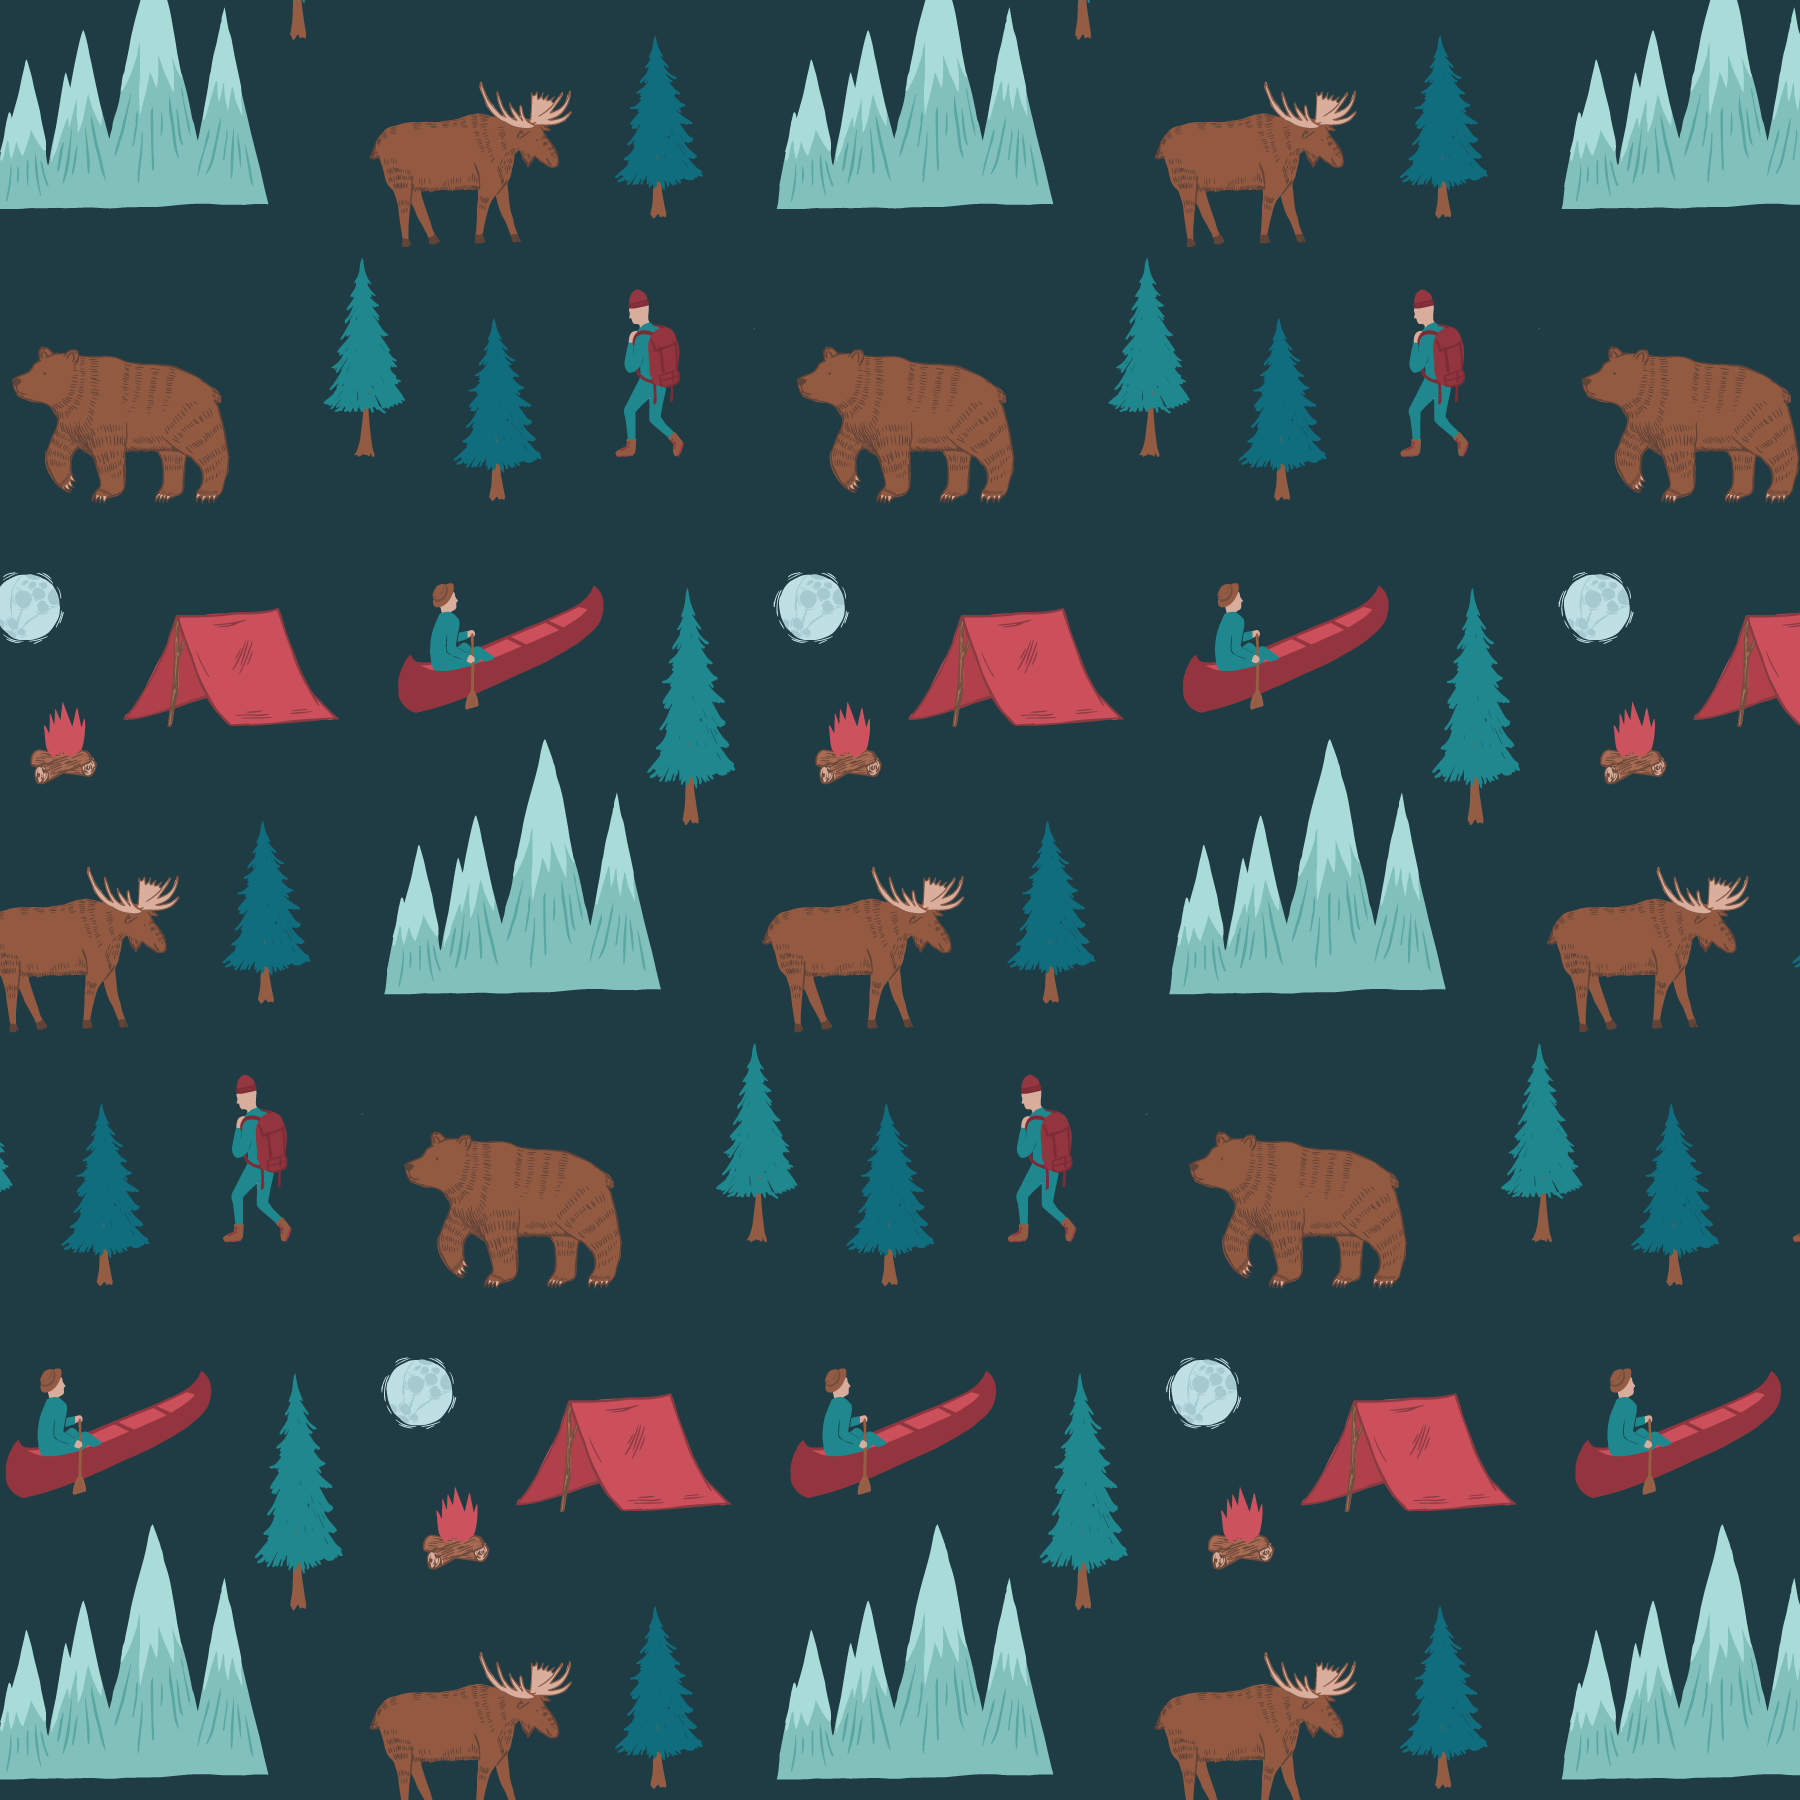 mountain-pattern-swatch-4.png